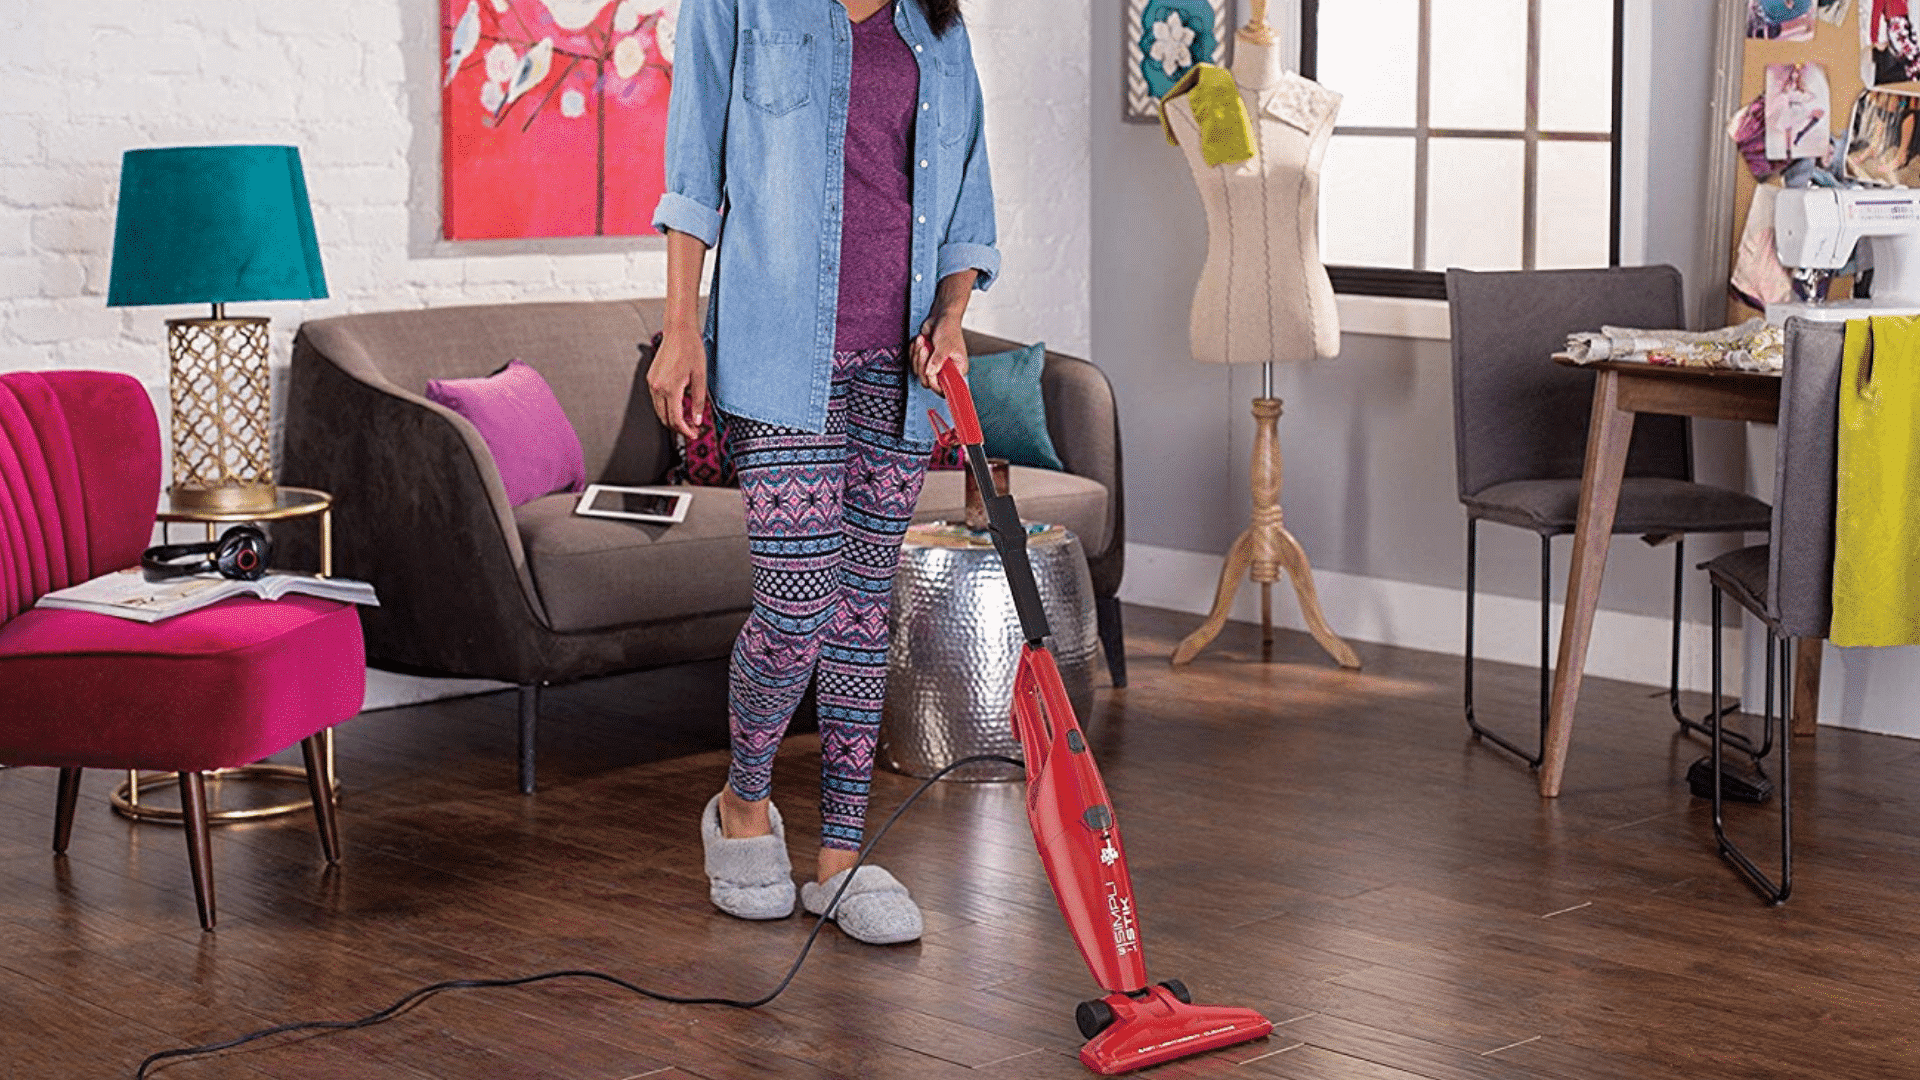 image of dirt devil simpli stik vacuuum being used to clean wood floor